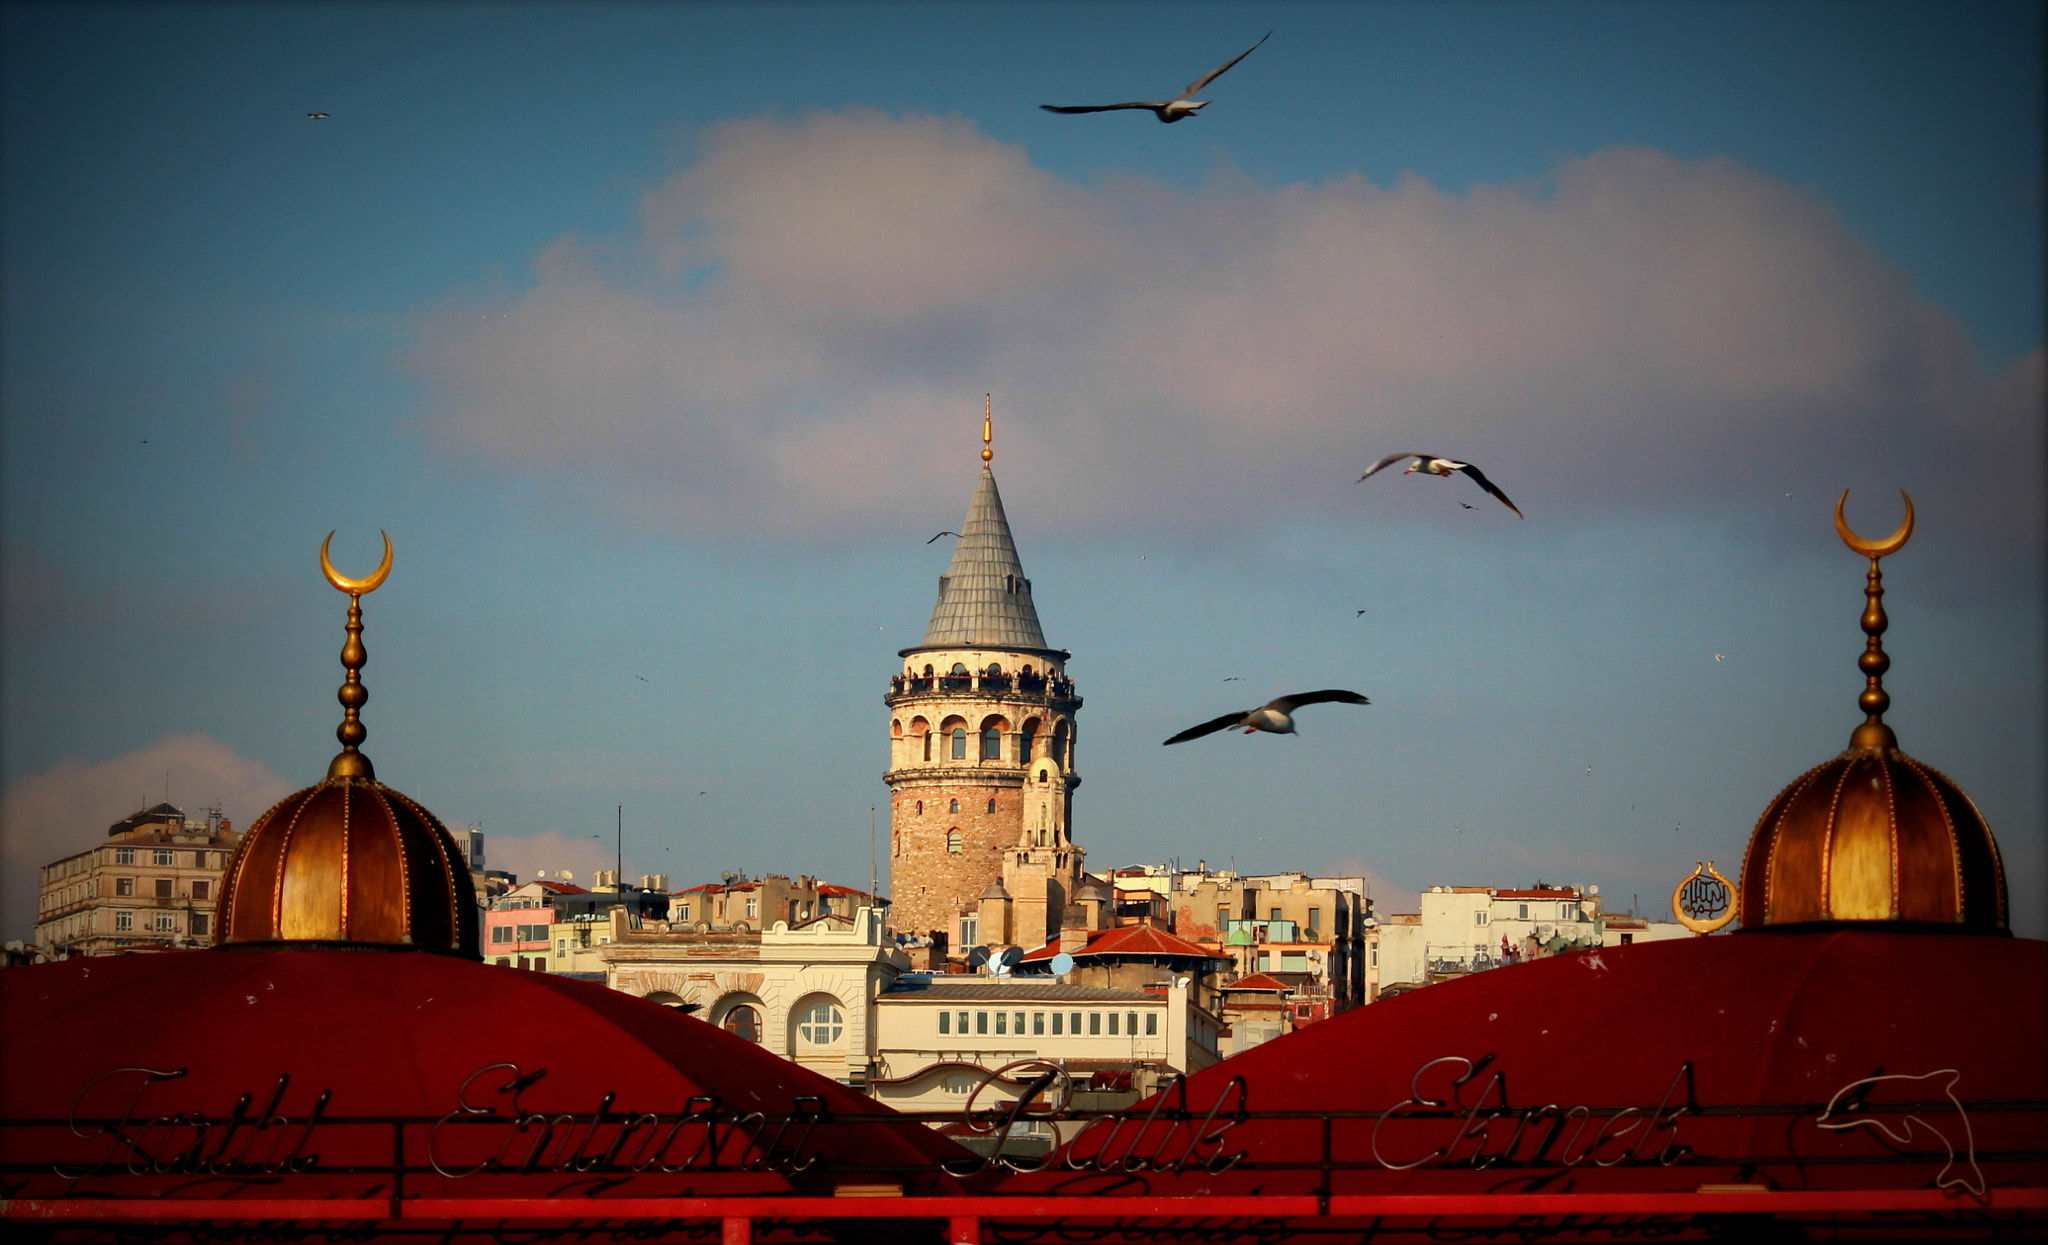 Photograph Galata tower by Ramazan  Fener on 500px